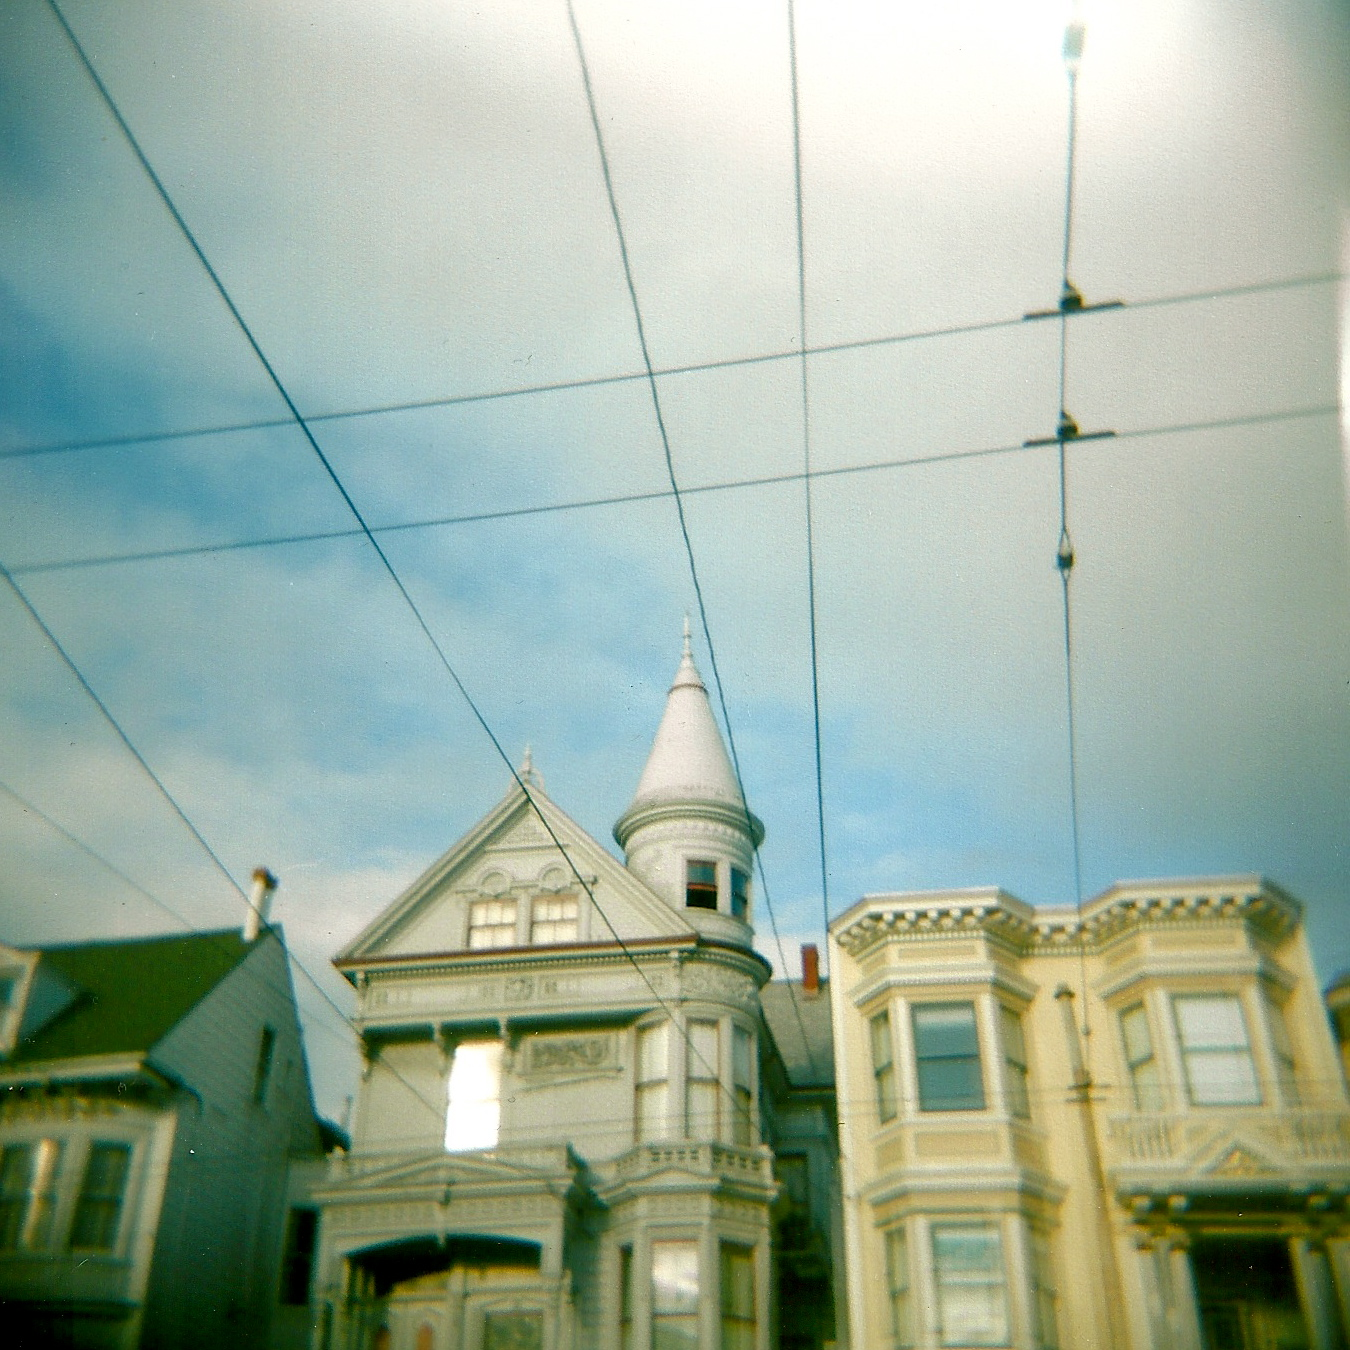 San Francisco classic architecture and electrical wires.